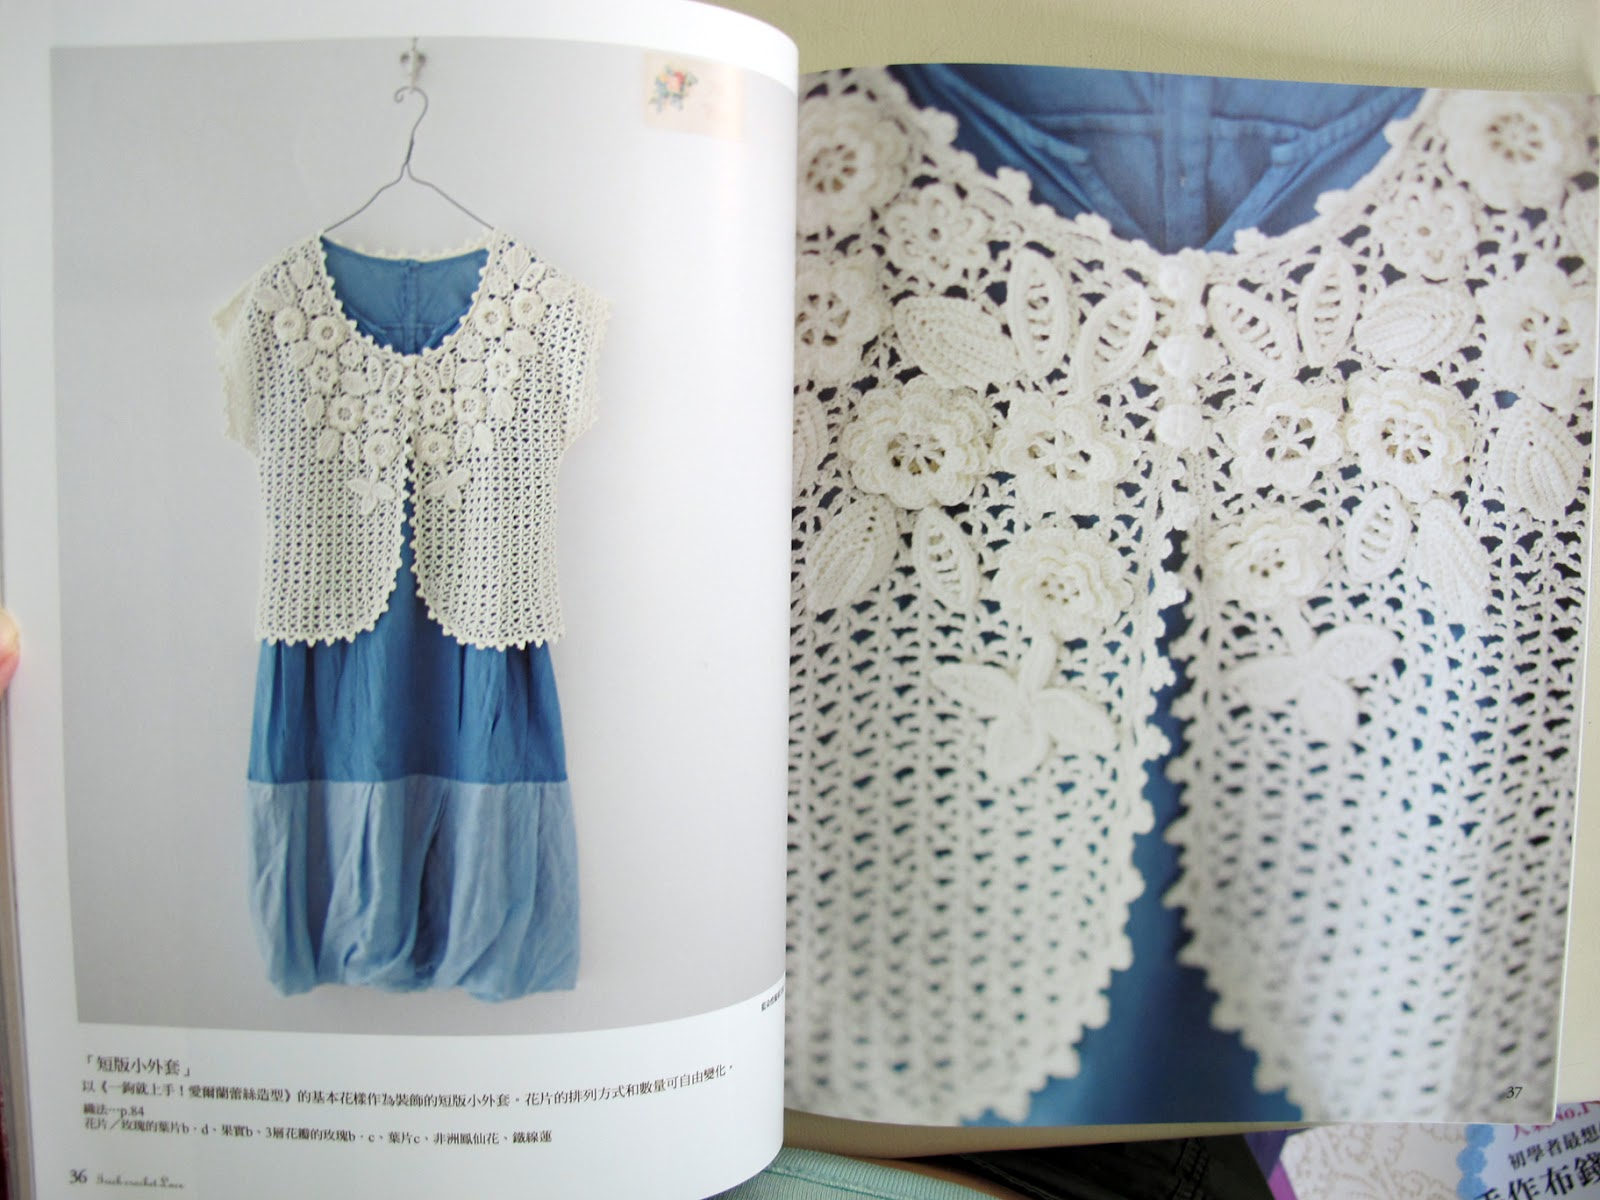 Crochet Books : ... .com: Japanese Crochet Book: I want to try Irish Crochet Lace Book